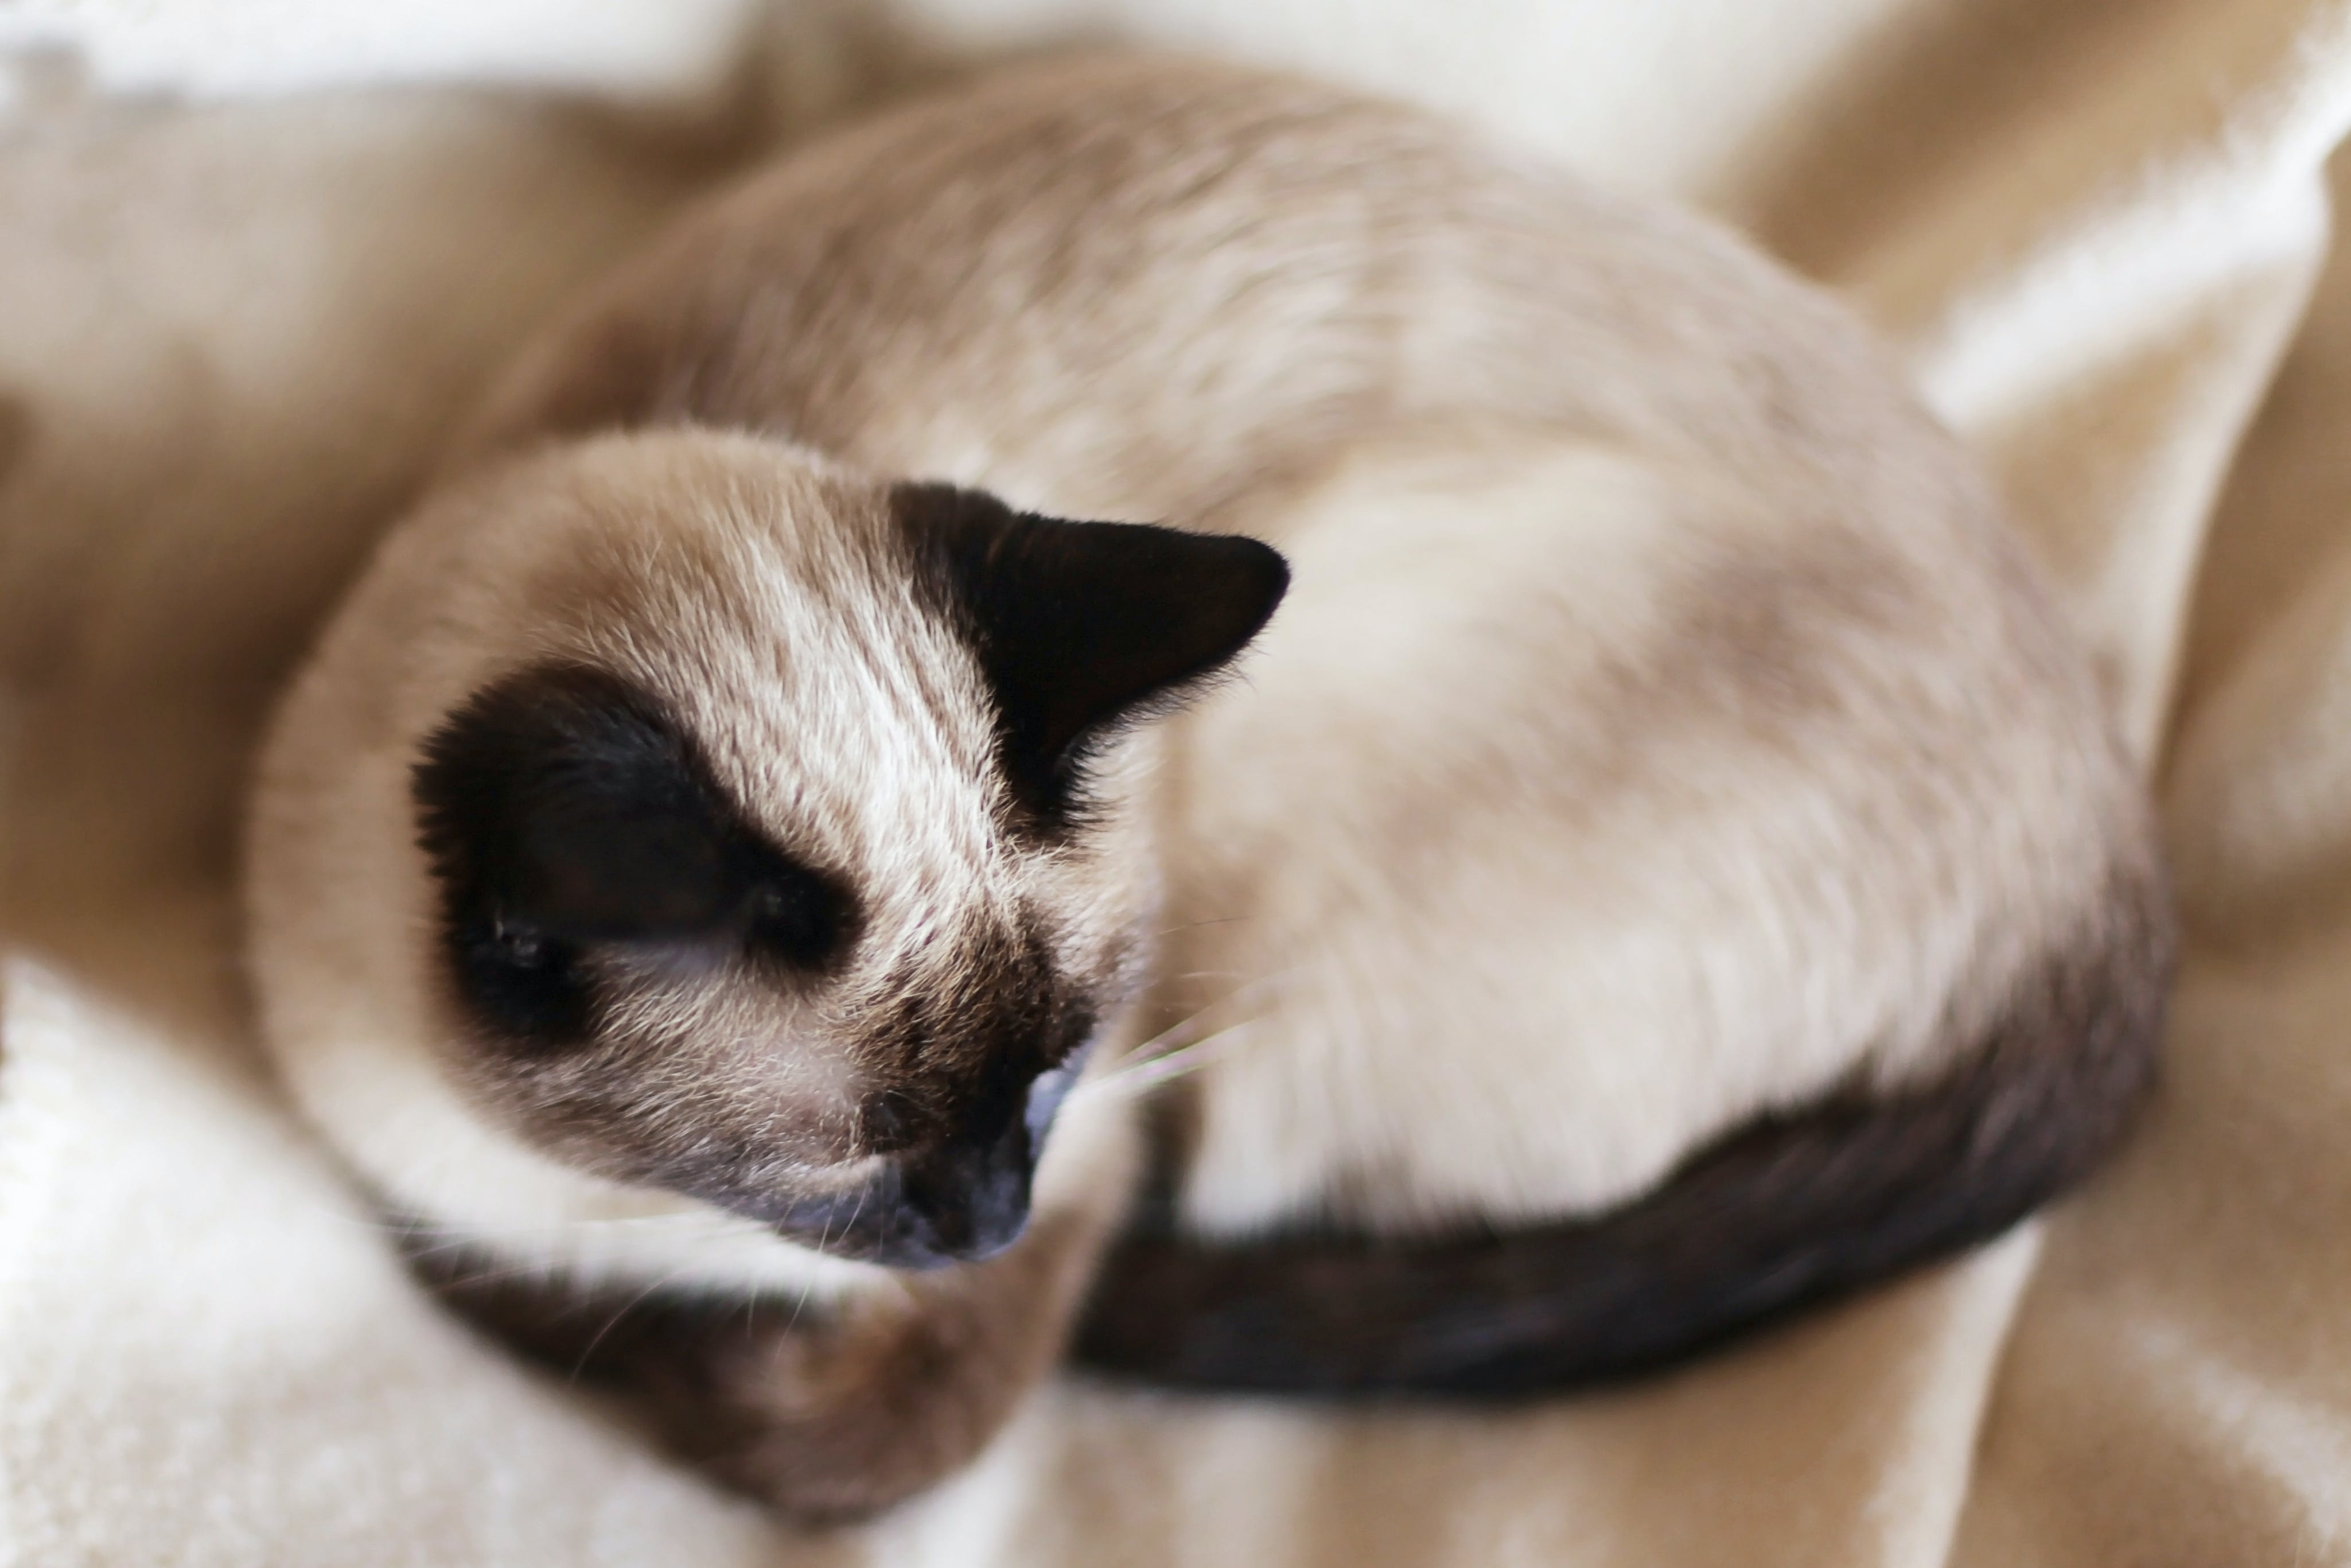 Free stock photo of cat, whiskers, siamese cat, black ears